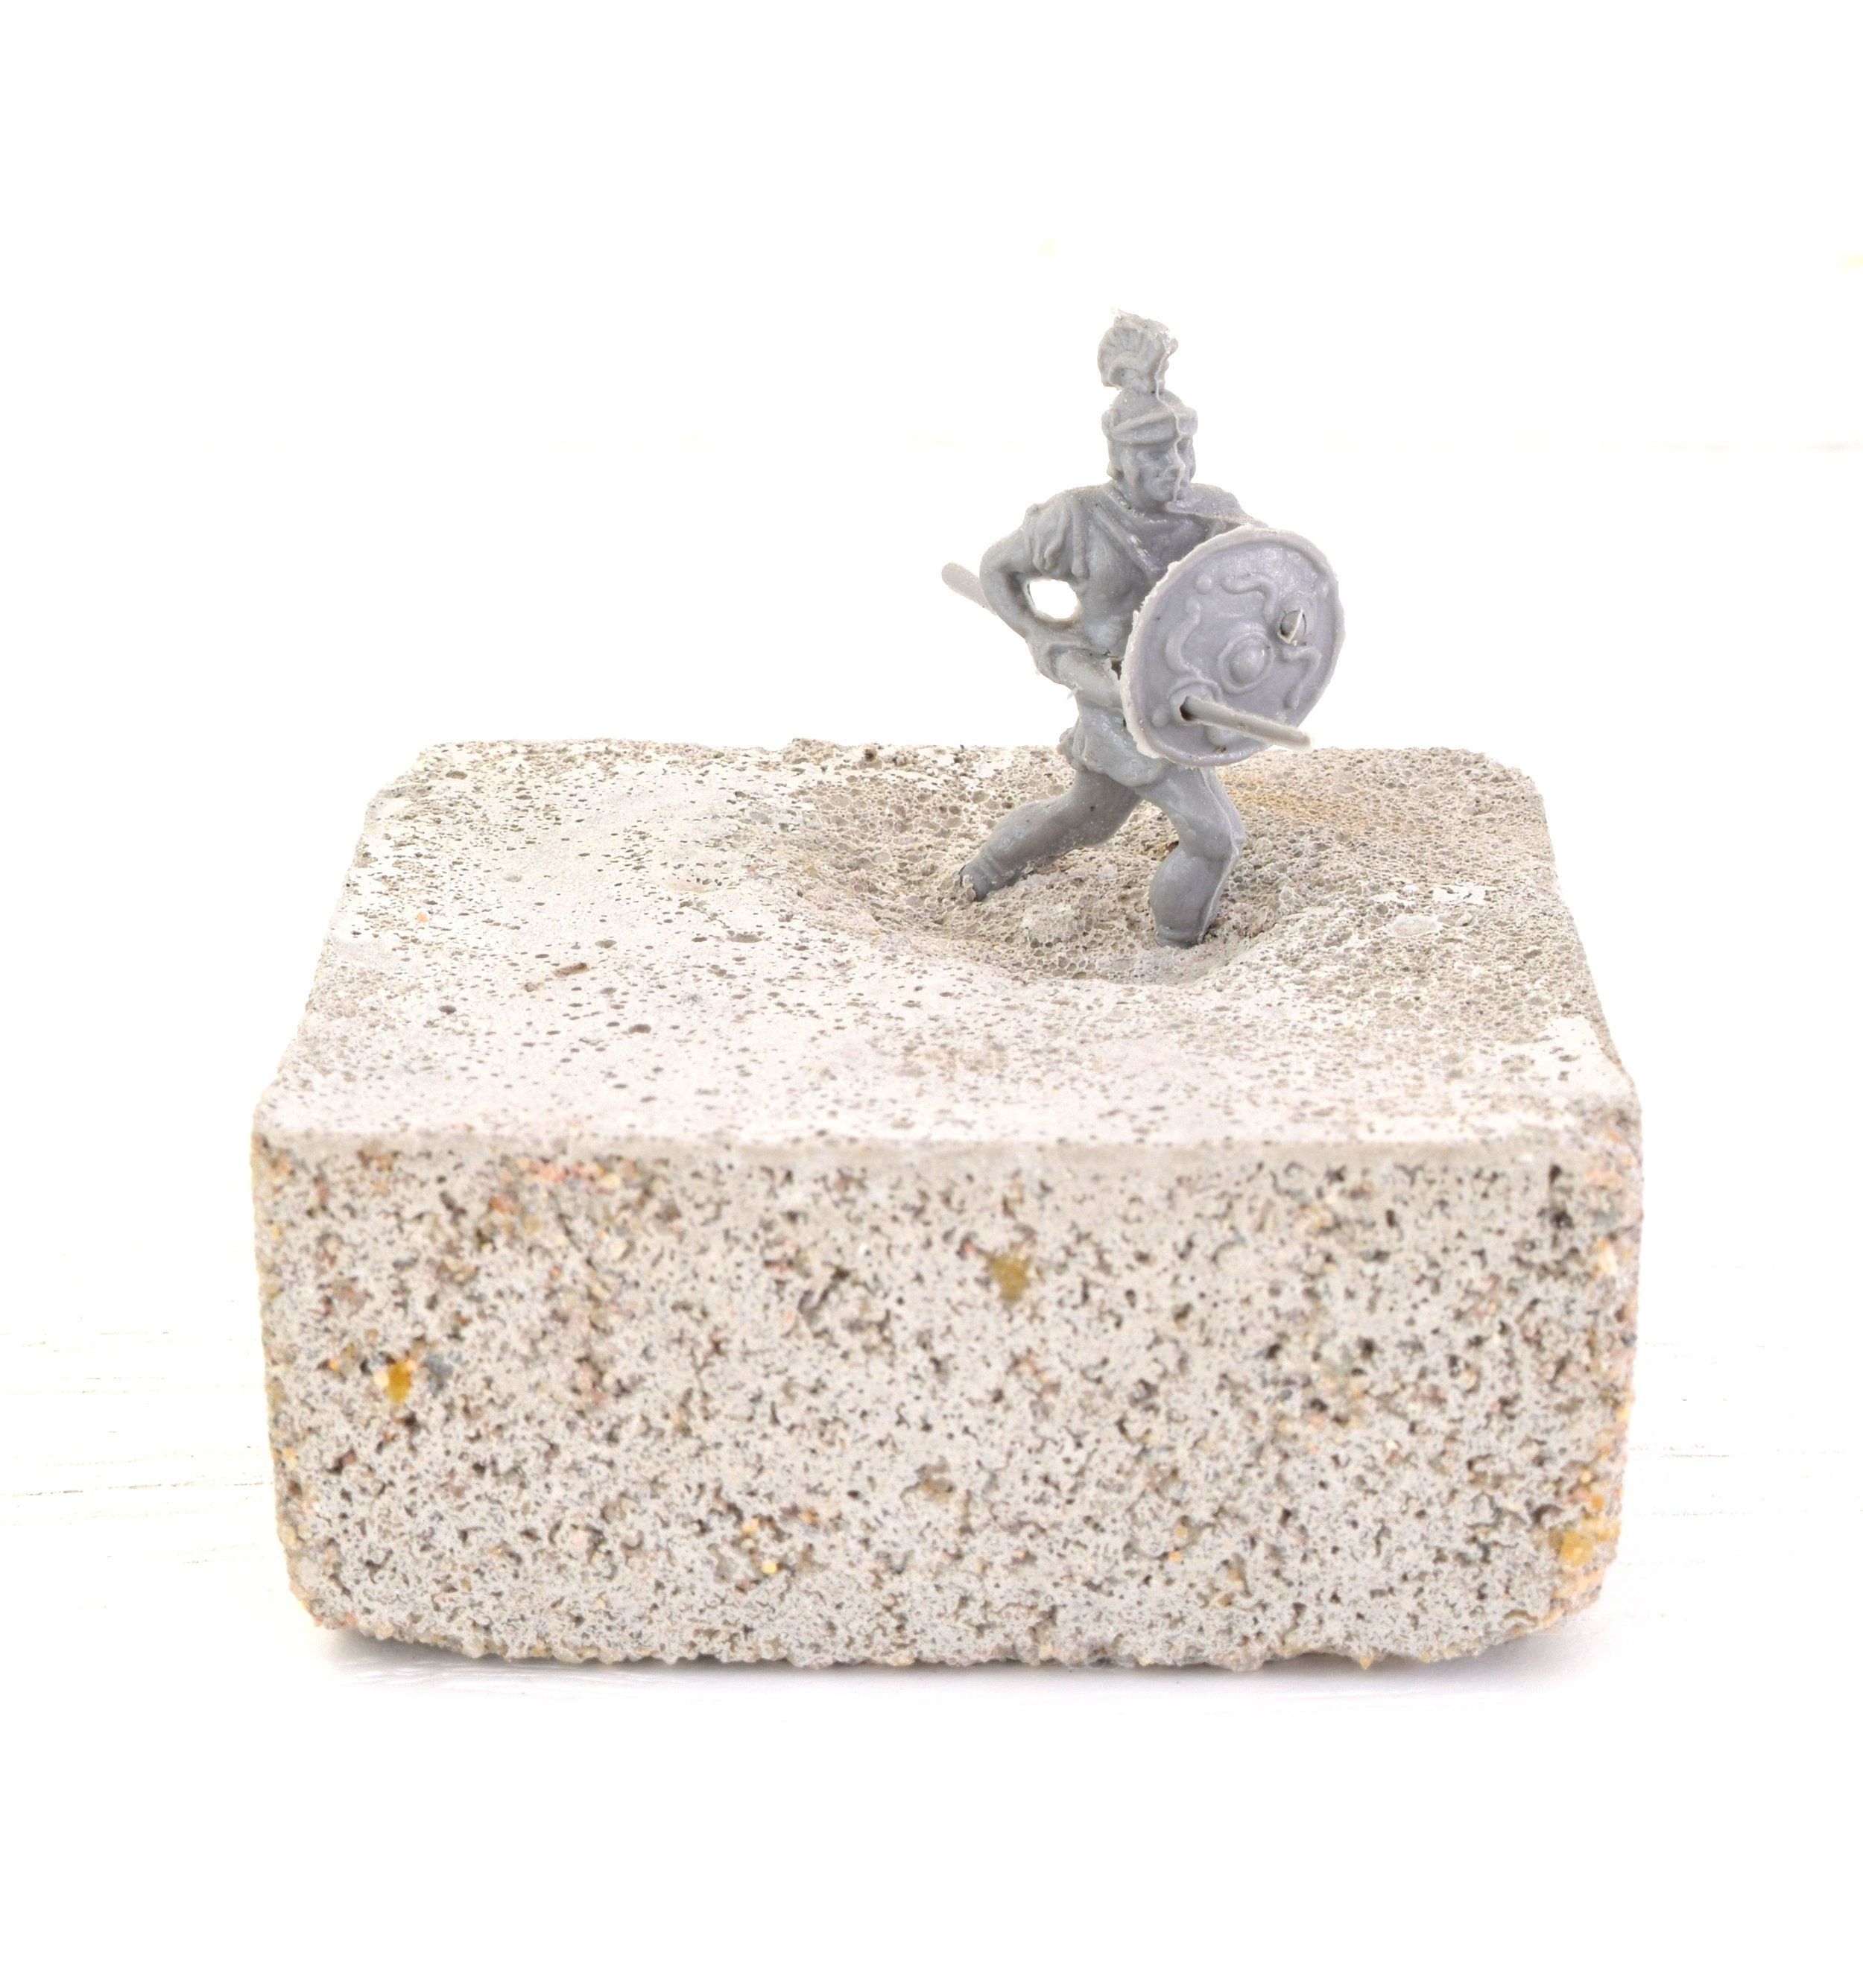 'UNTITLED' 2015    Concrete and plastic Roman soldier 4 x 4 x 2 cm